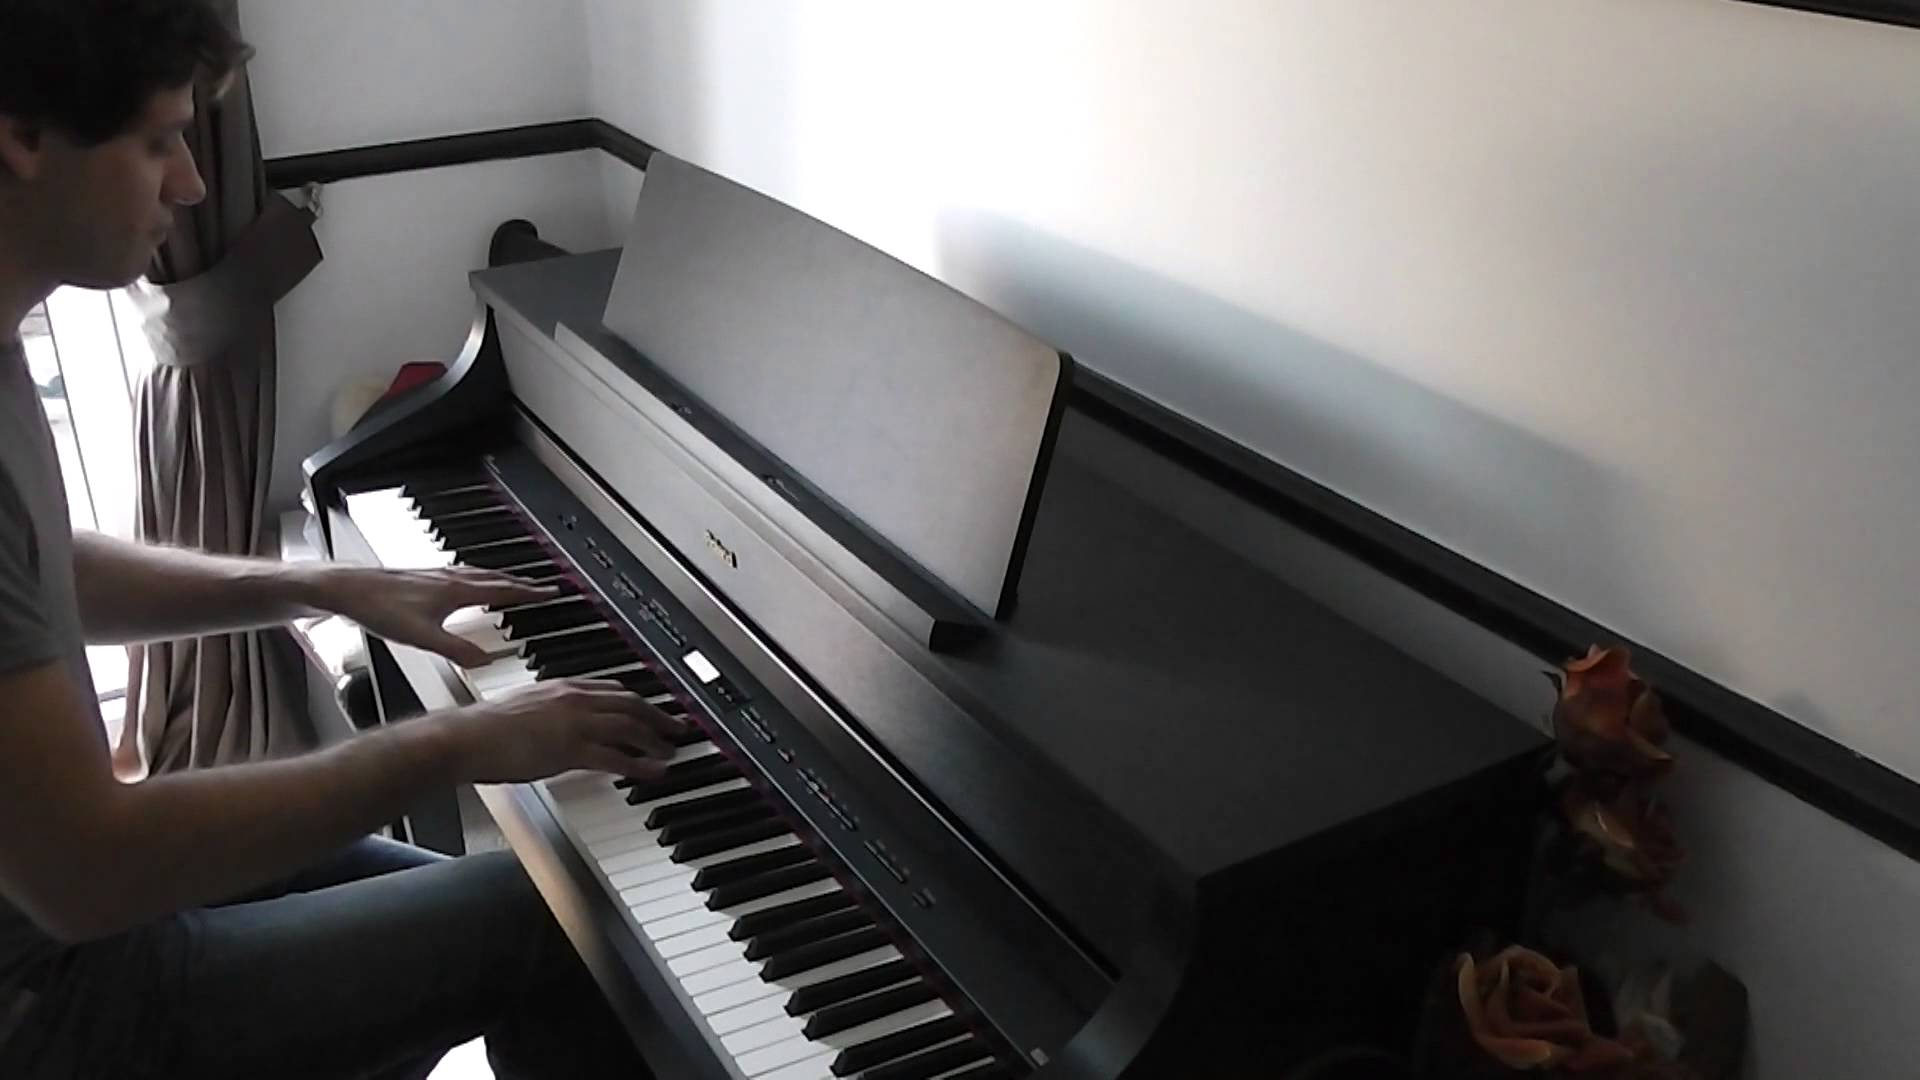 Mark Fowler Performs Wonderful Piano Cover of Linkin Park's